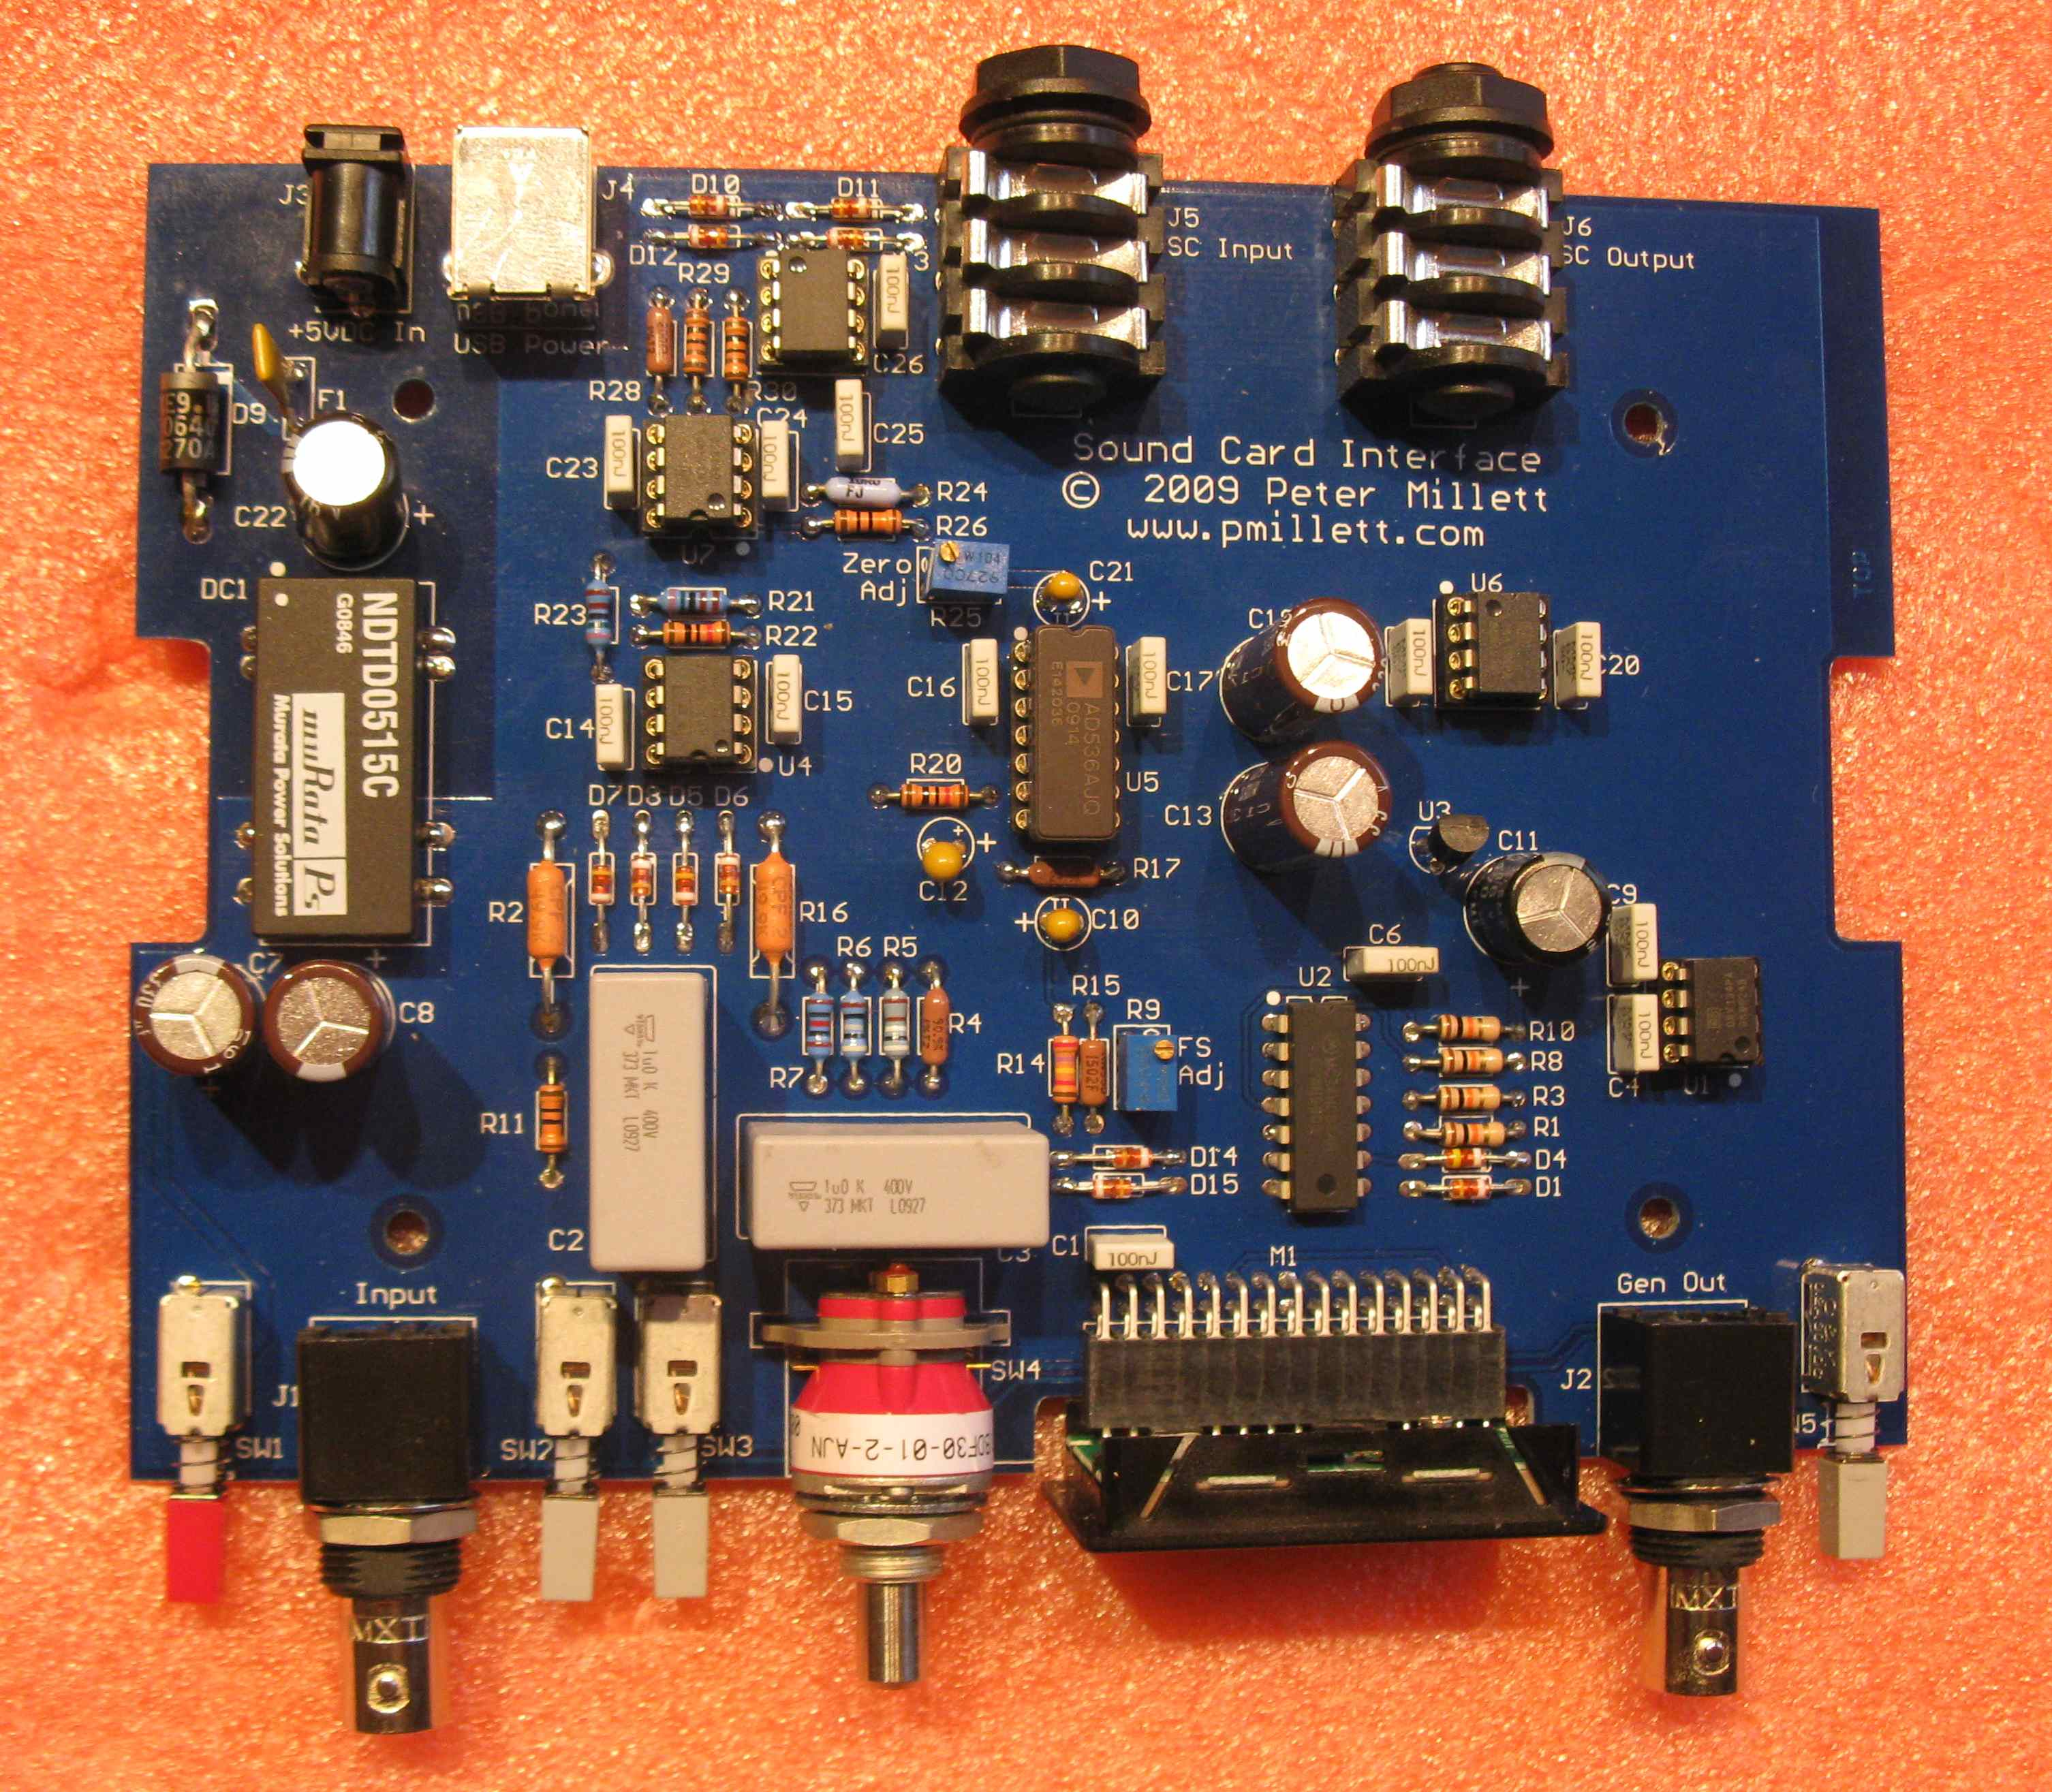 Soundcard Interface Audio Distortion Meter Assembly Is As Simple Stuffing The Parts All Through Hole No Smt I Used Sockets For Ics Though You Really Dont Need To